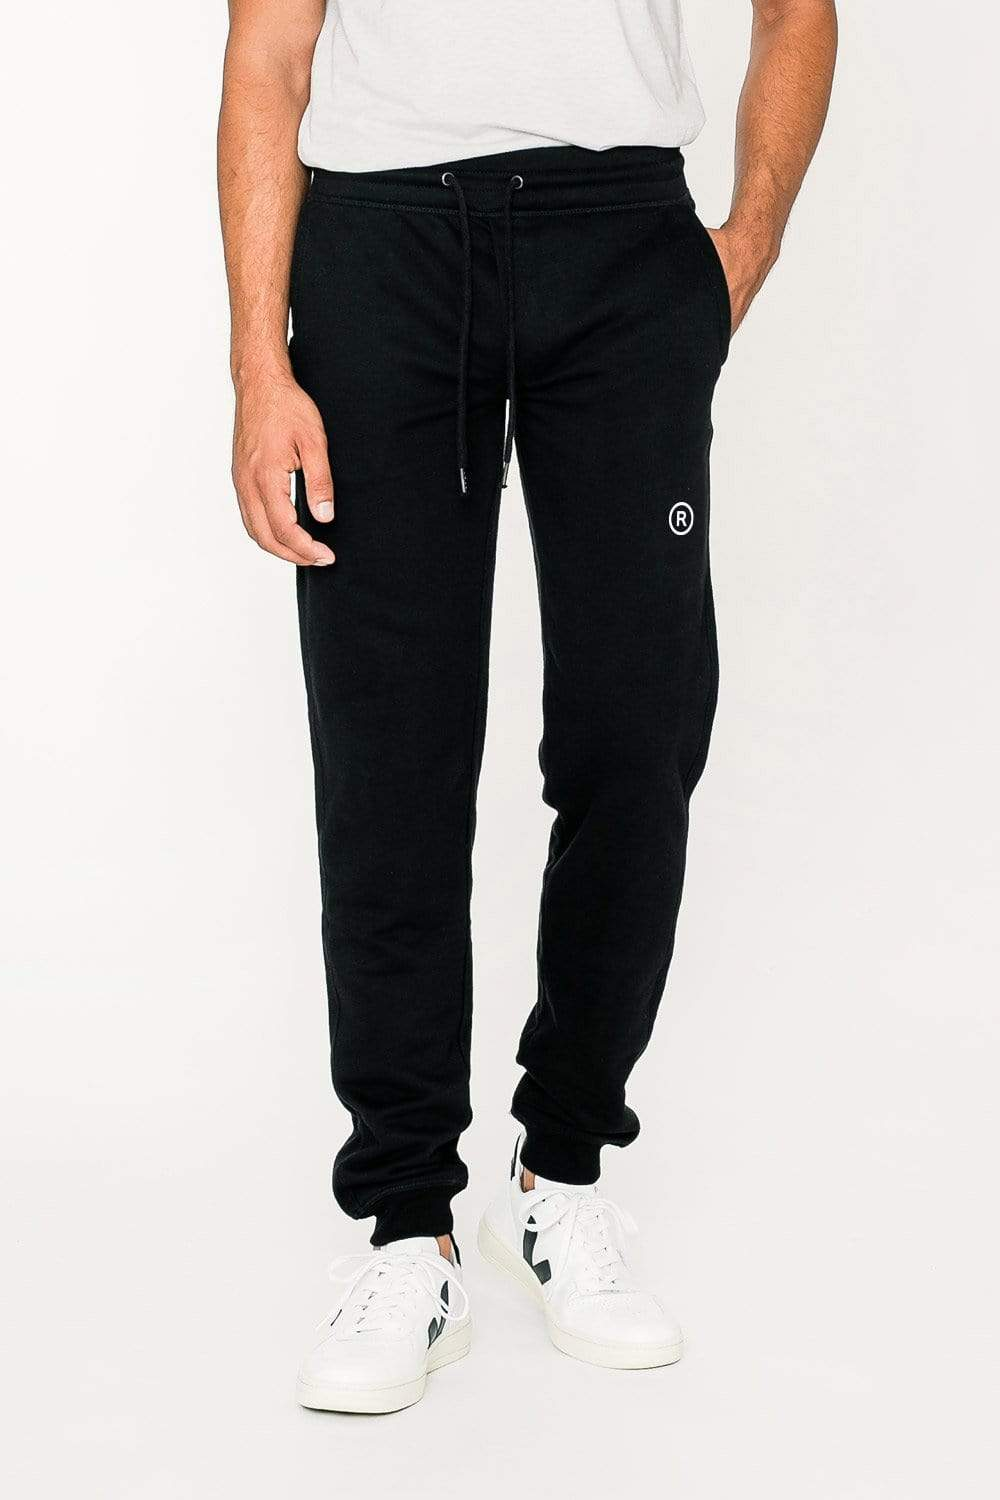 rotholz Activewear 'Rights' Jogginghose Schwarz